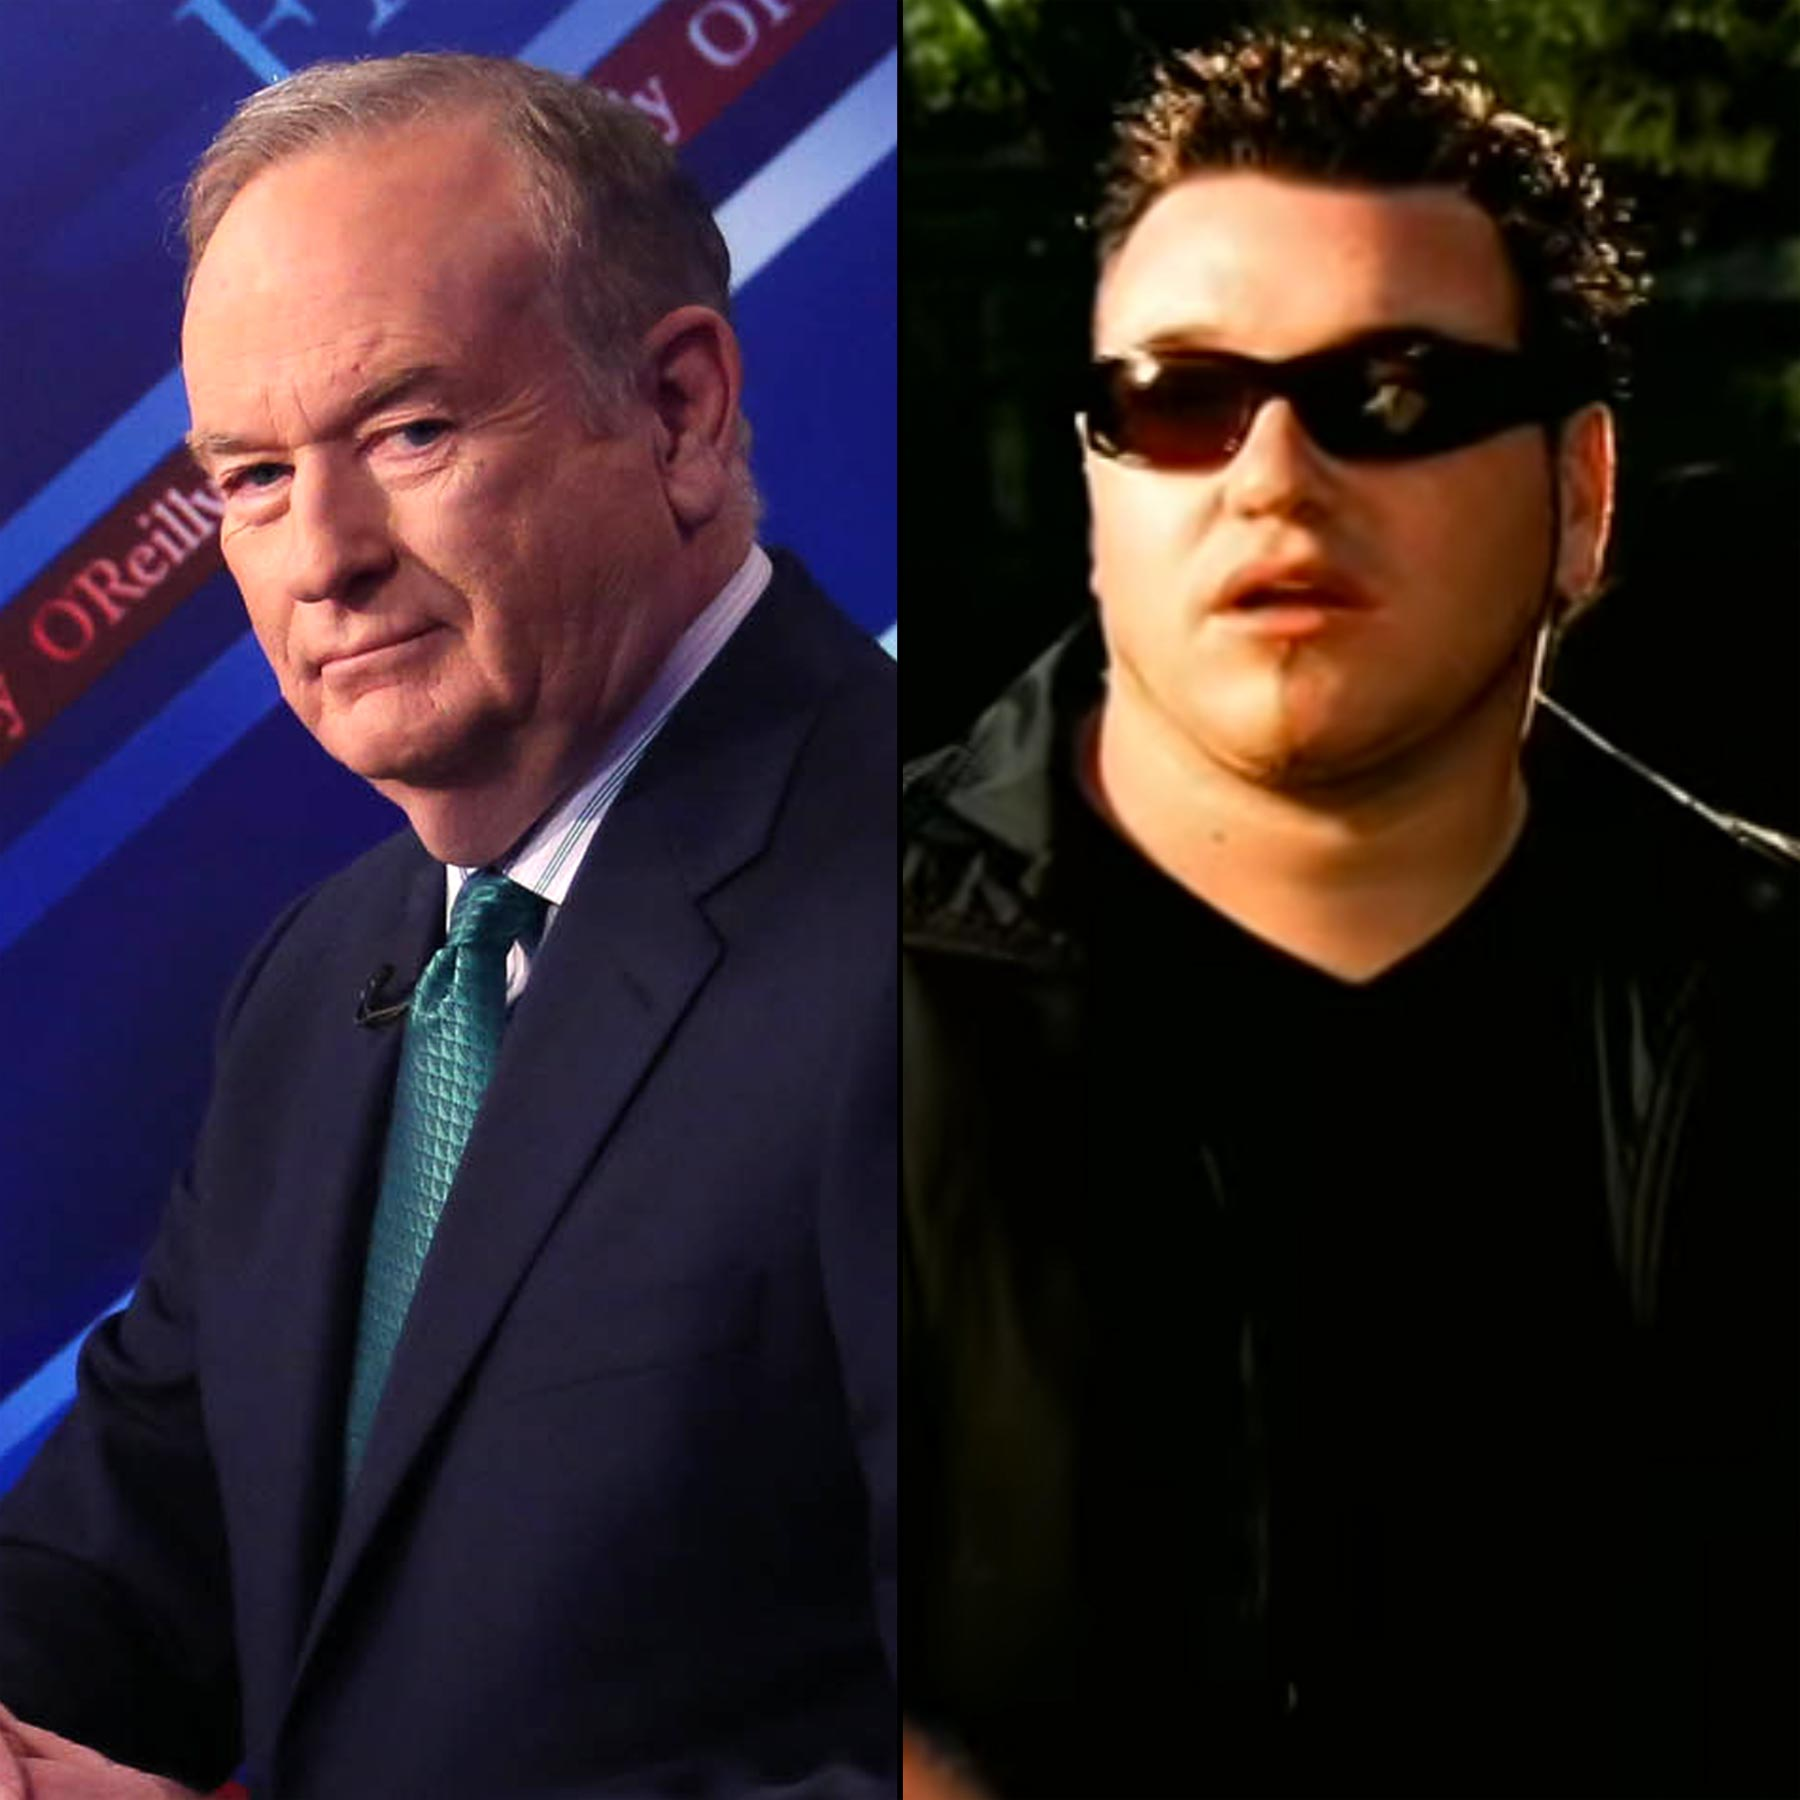 BILL-OREILLY-SMASH-MOUTH